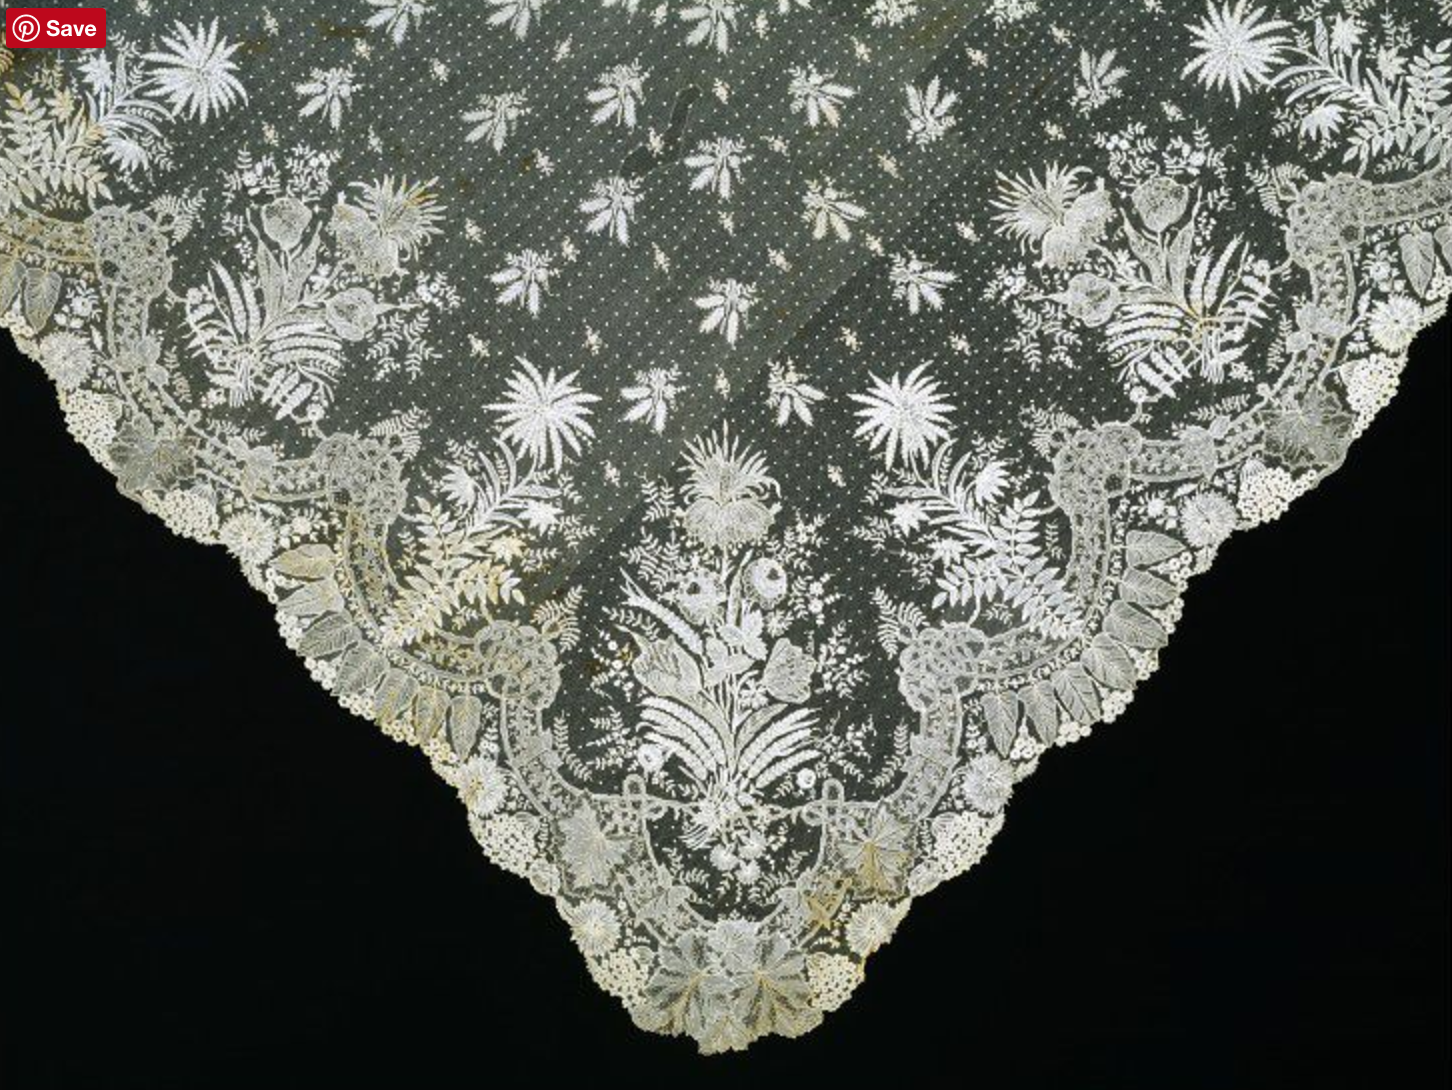 A lace wedding veil in the eighteenth century. (SOURCE: http://collections.vam.ac.uk/item/O87097/wedding-veil-unknown/)